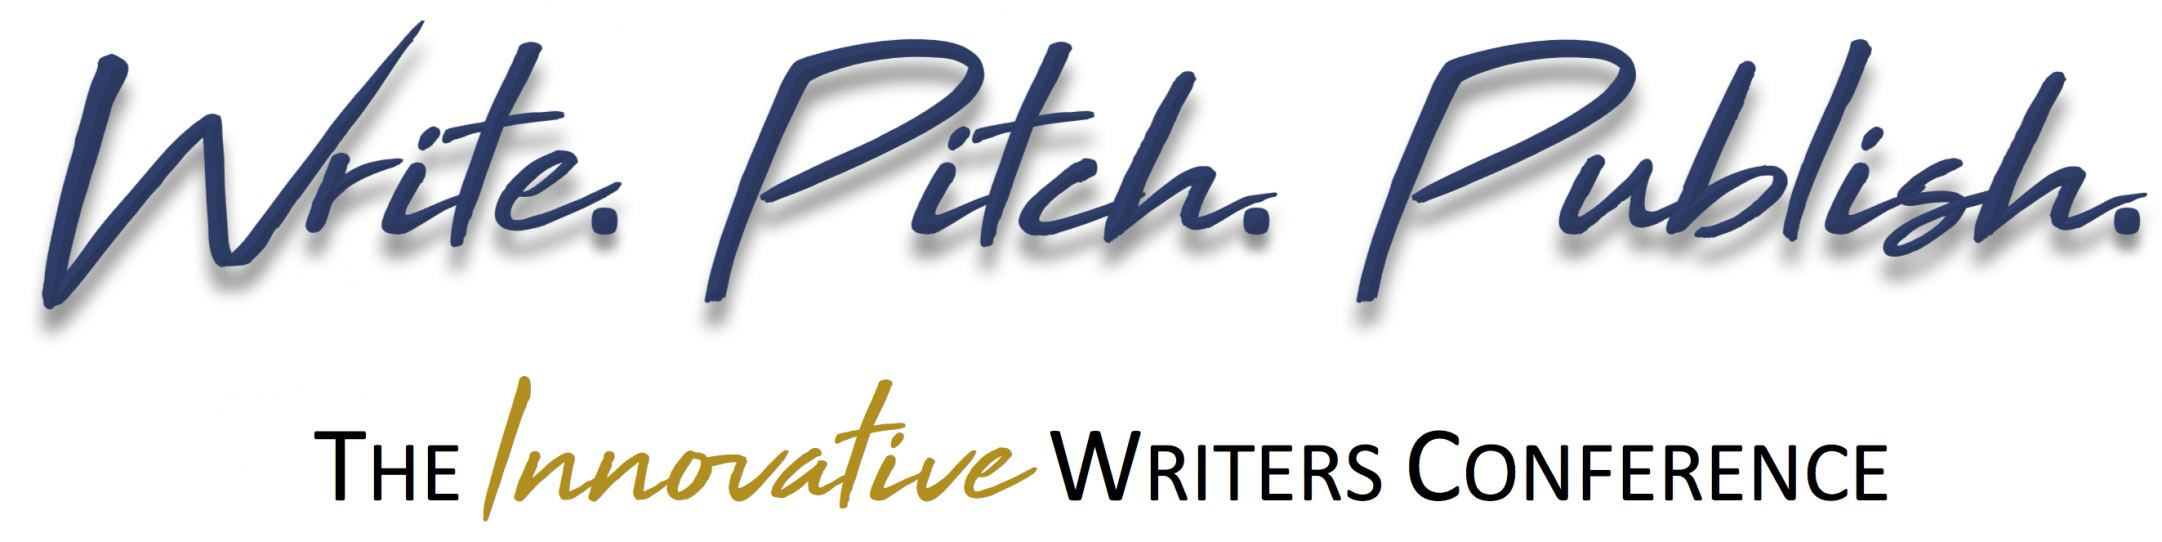 Write Pitch Publish